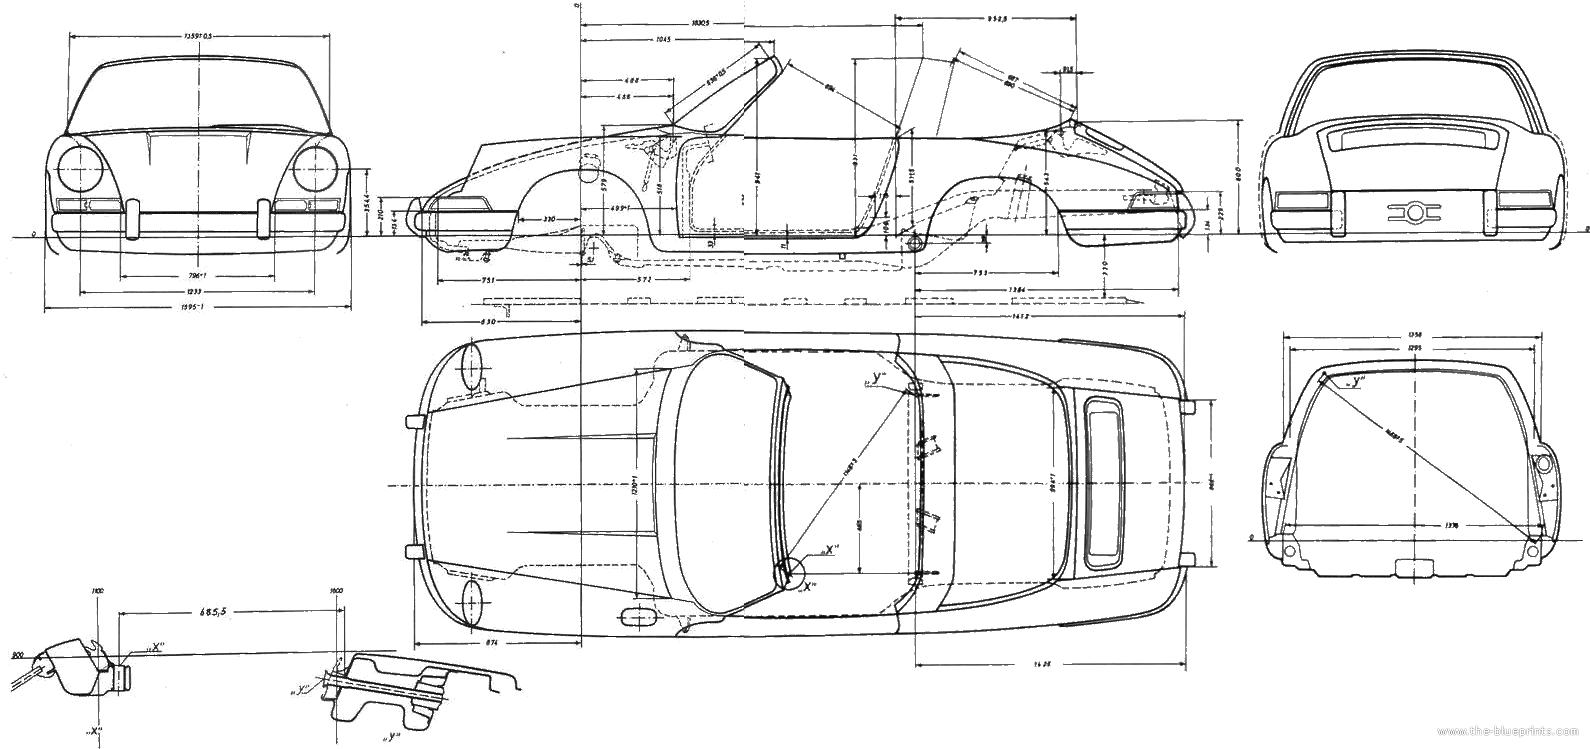 small resolution of porsche 911 targa technical drawings race cars drag race cars architectural drawings